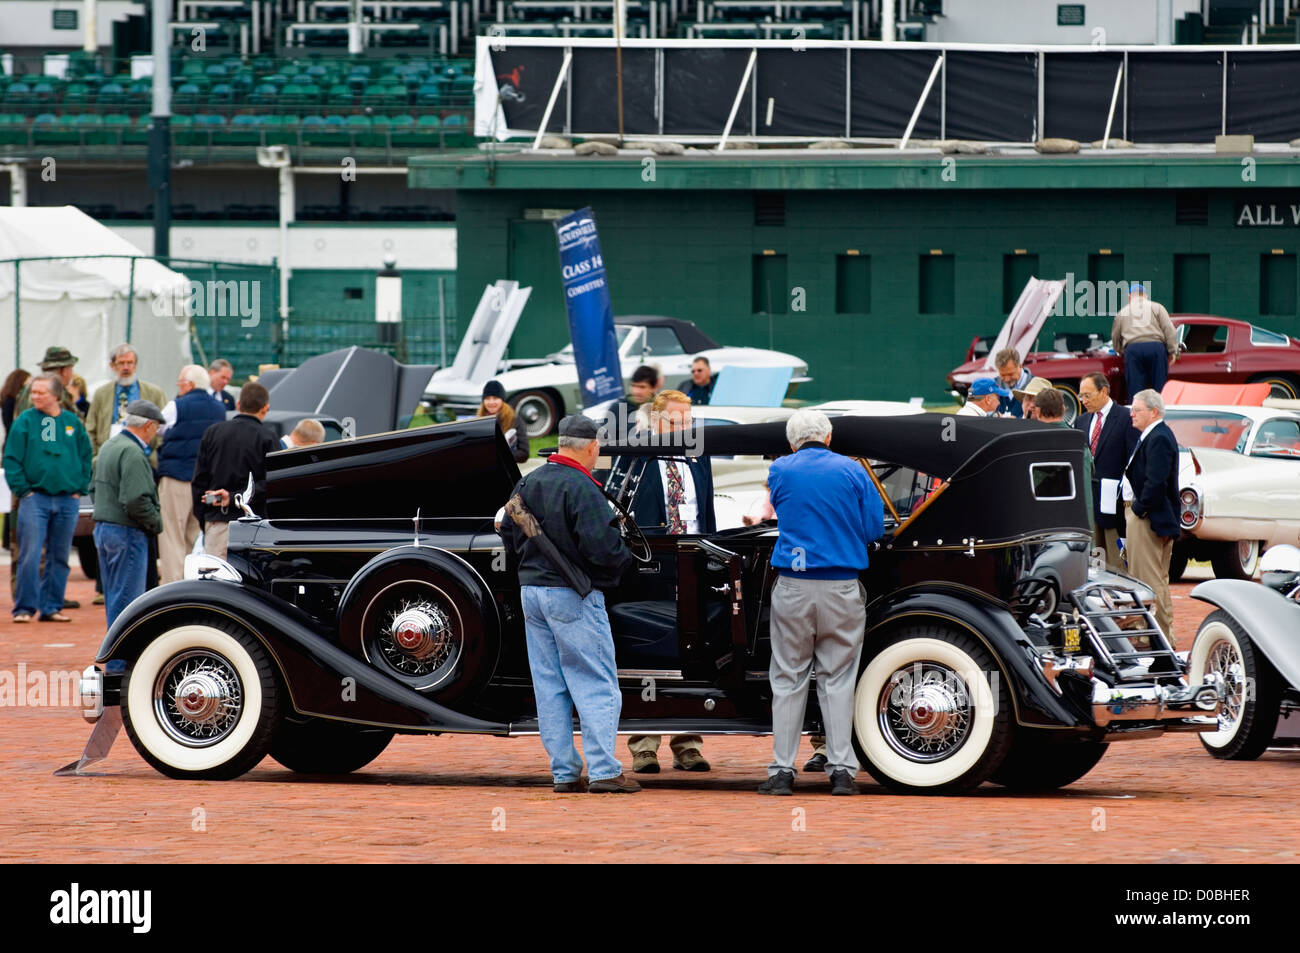 Visitors to the 2012 Concours d'Elegance Examining a Vintage Packard 12 Automobile at Churchill Downs in Louisville, - Stock Image